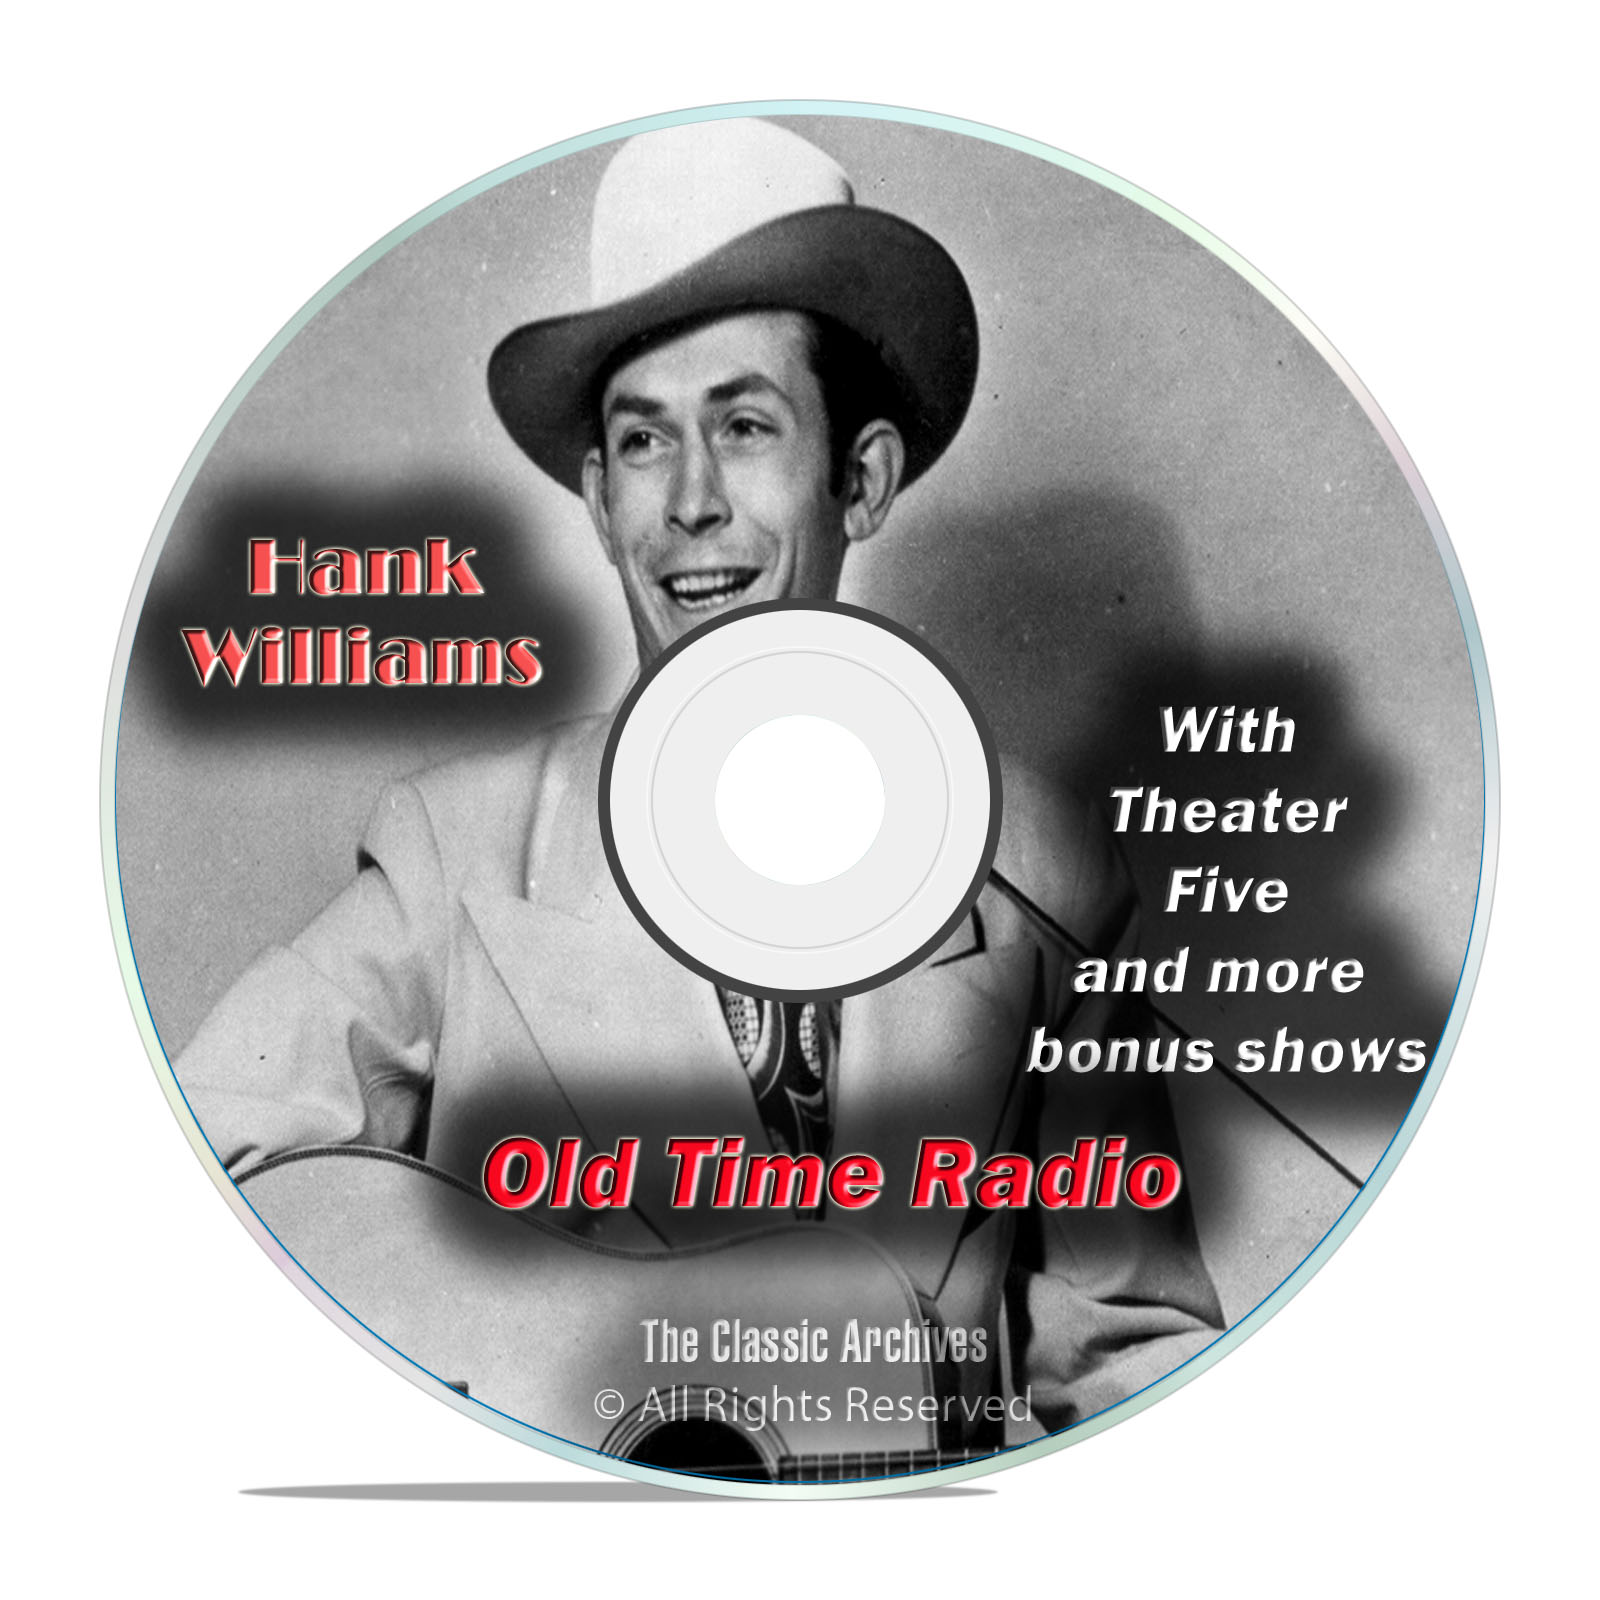 Hank Williams, 739 Episodes Old Time Radio, Complete Set, OTR DVD MP3